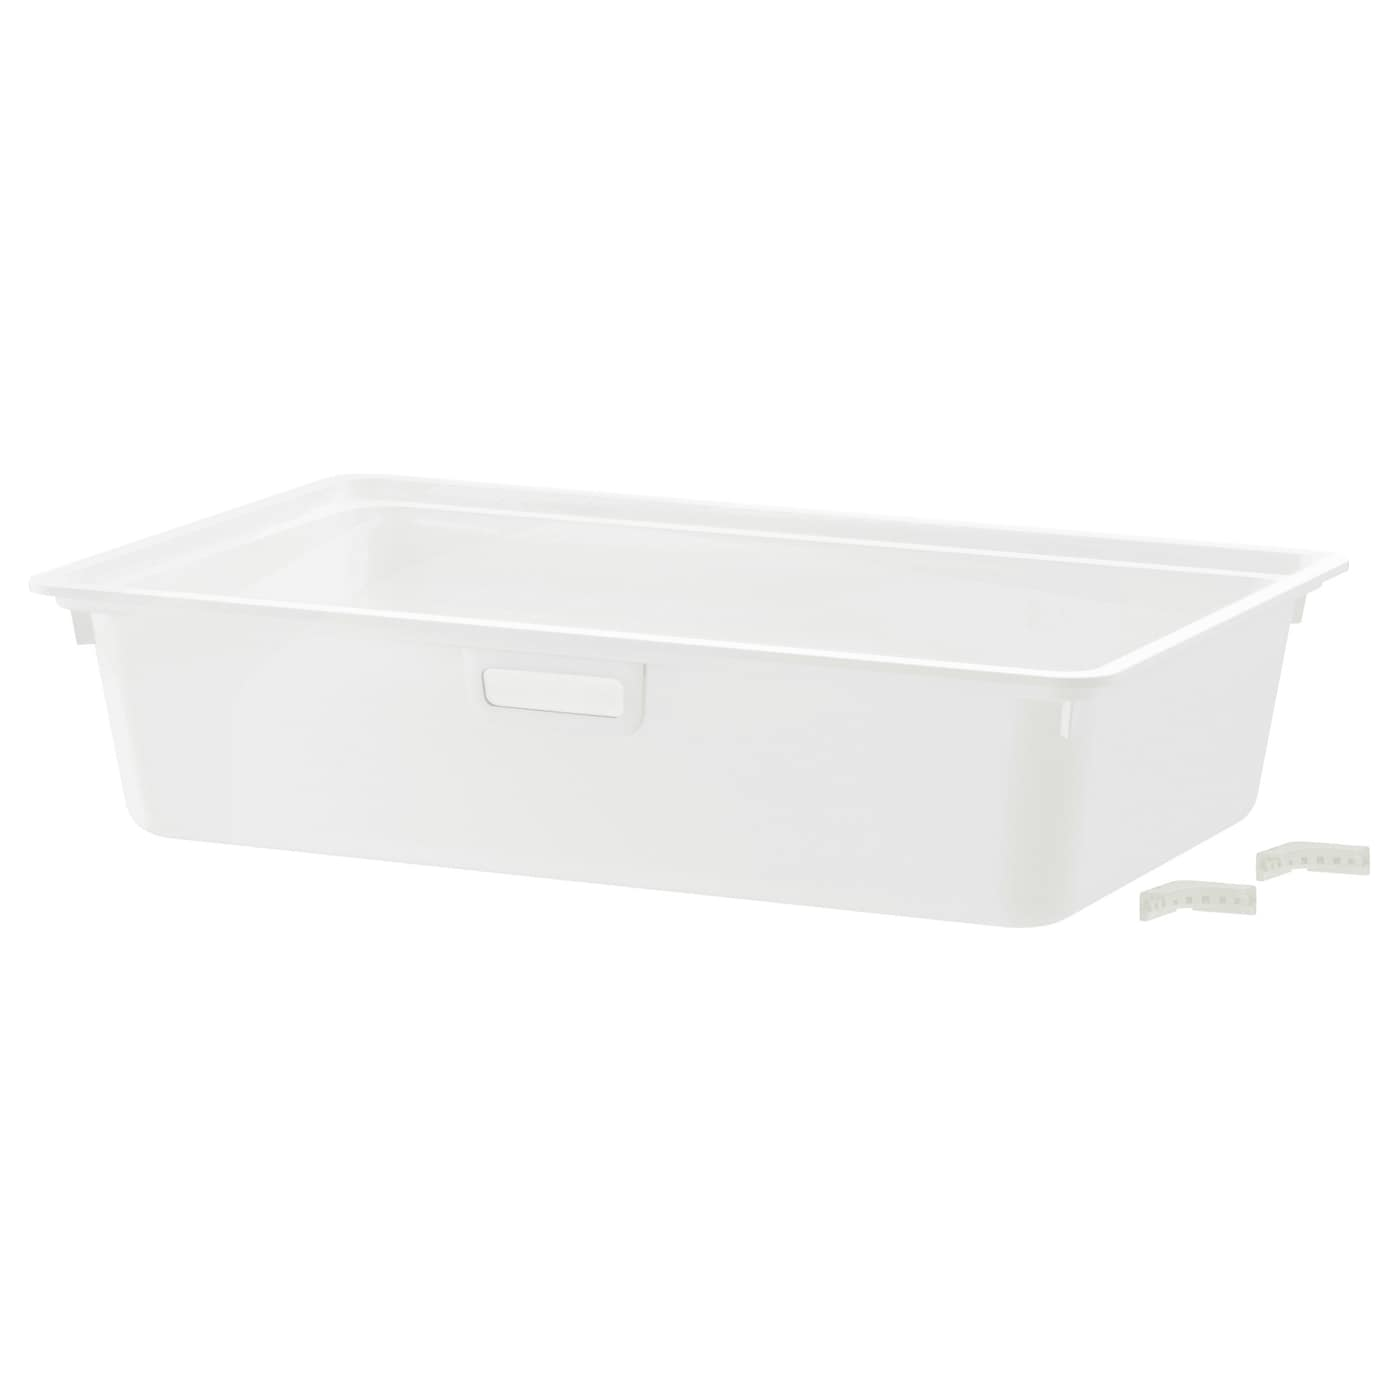 IKEA ALGOT box Practical for storing large and small things or to sort waste.